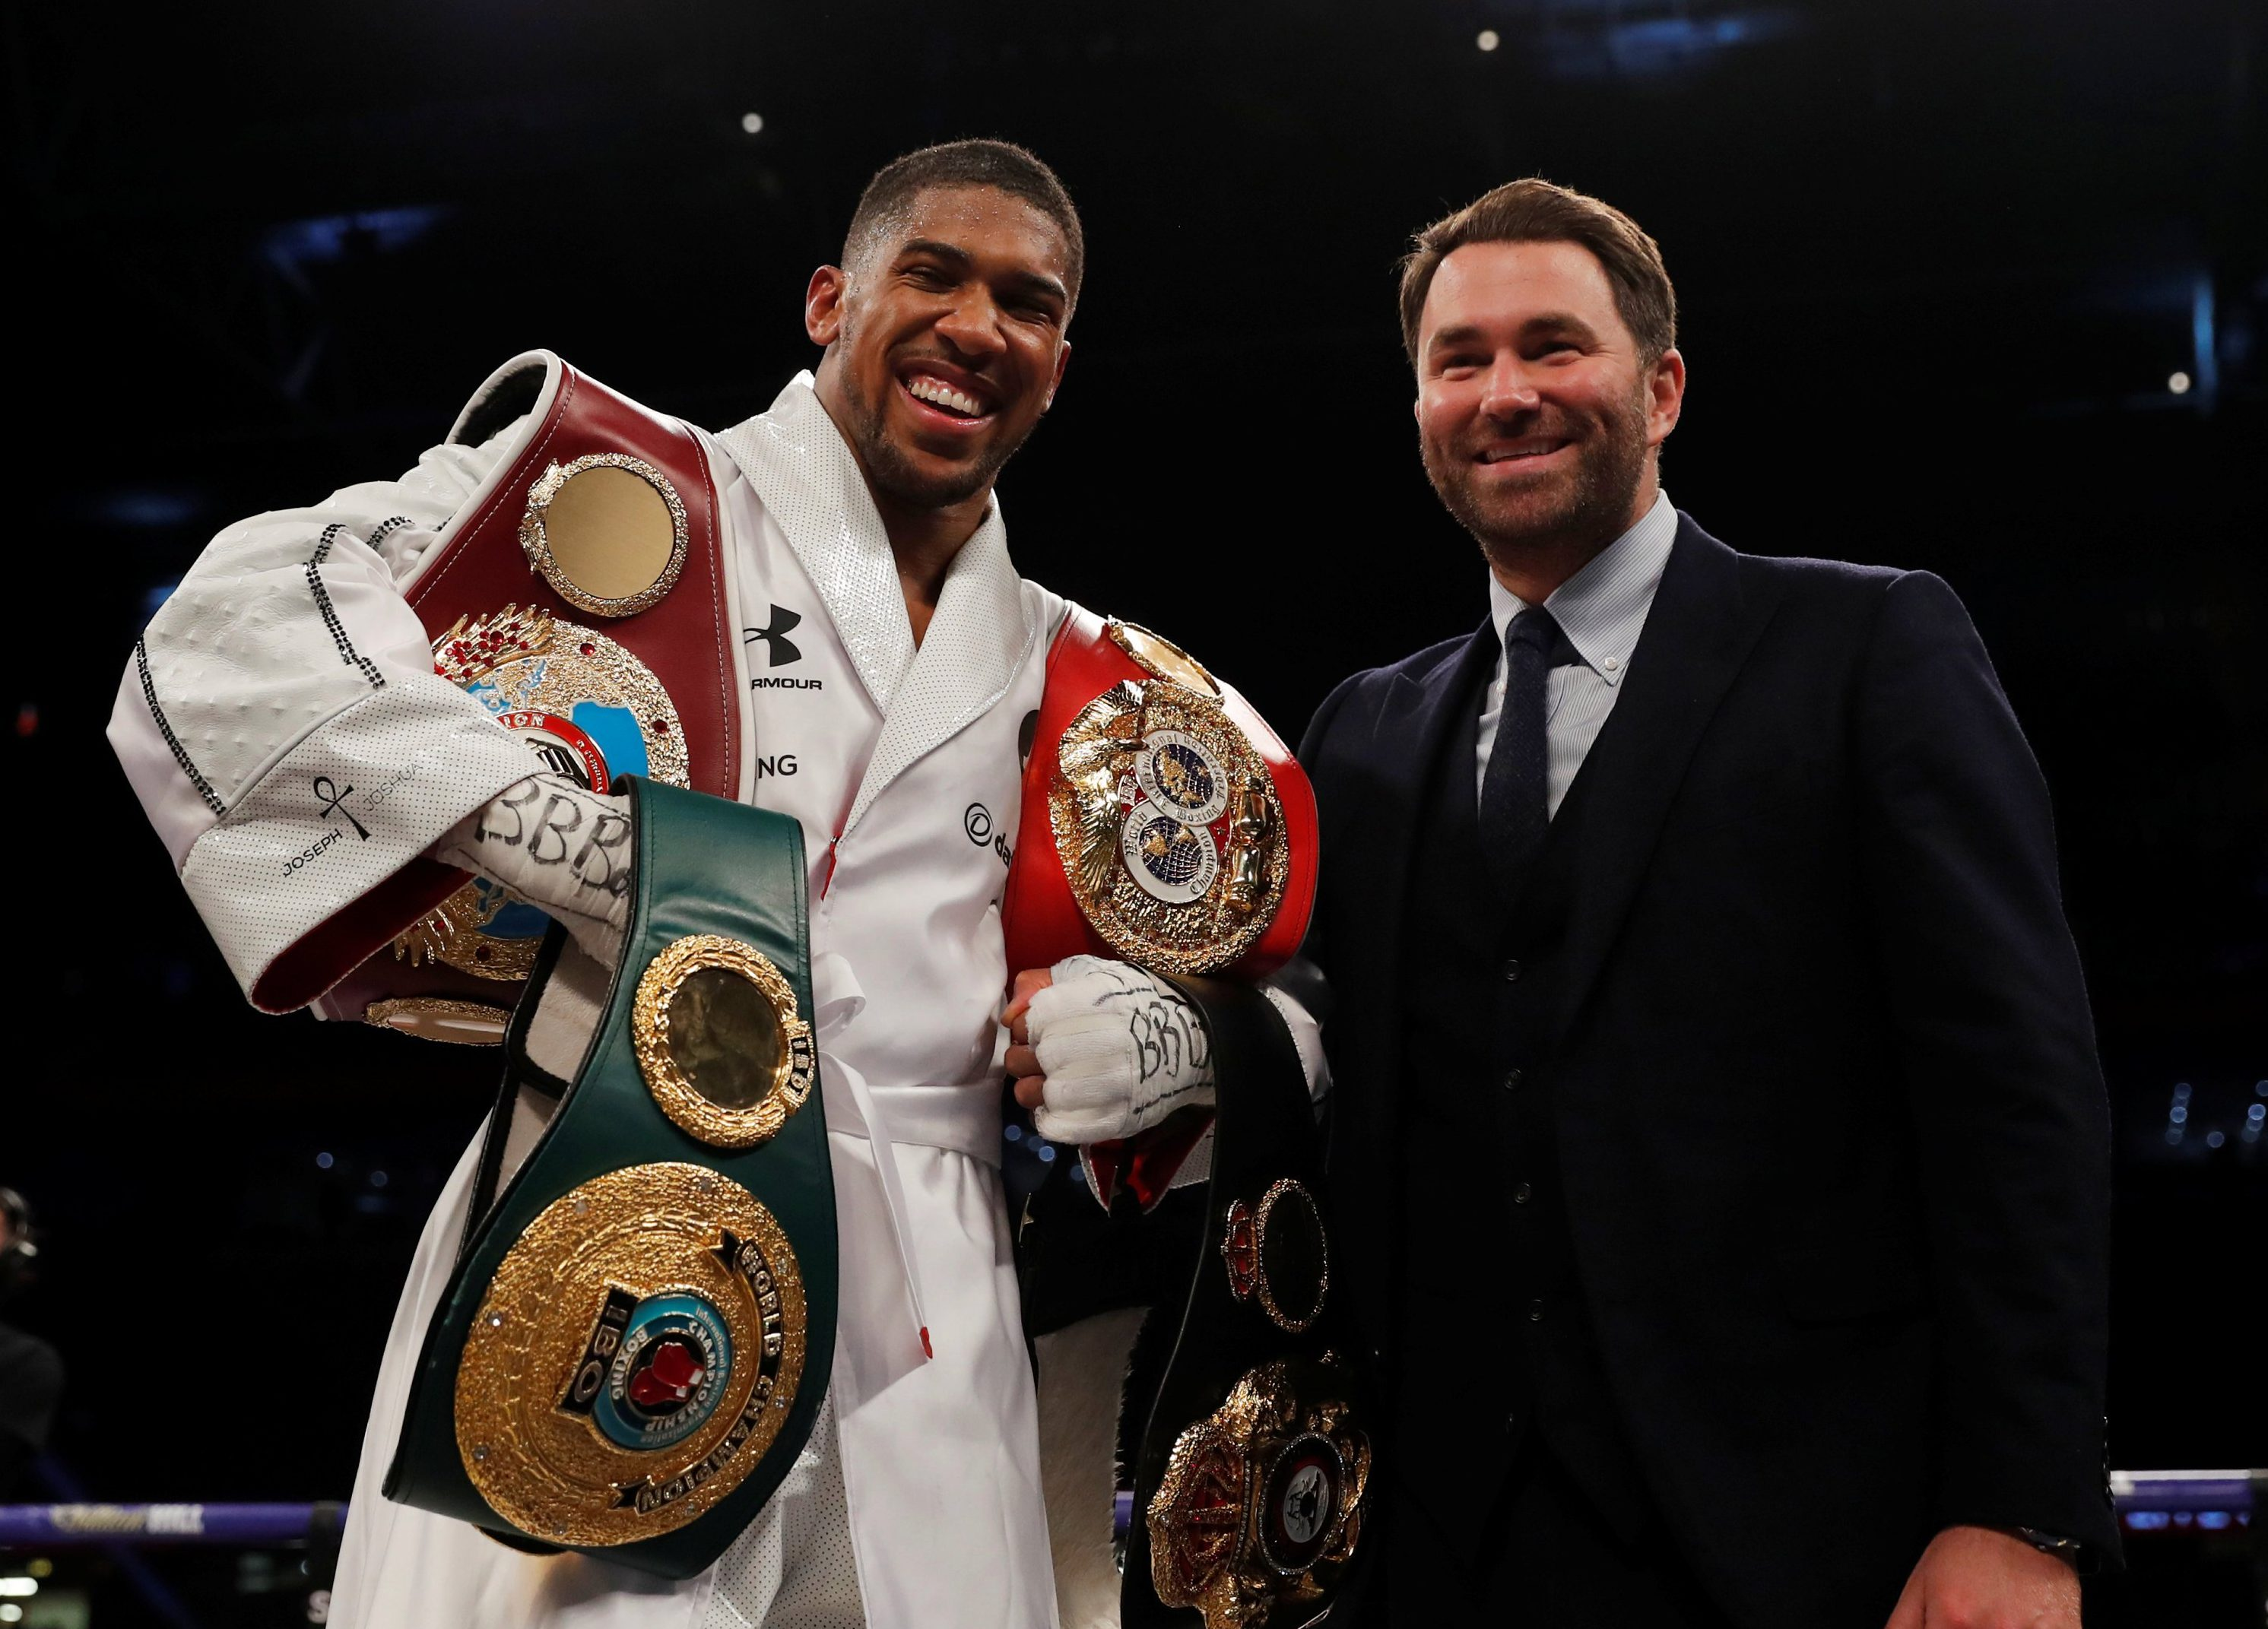 Eddie Hearn may have accidentally let slip who Anthony Joshua will be fighting on June 1 in New York